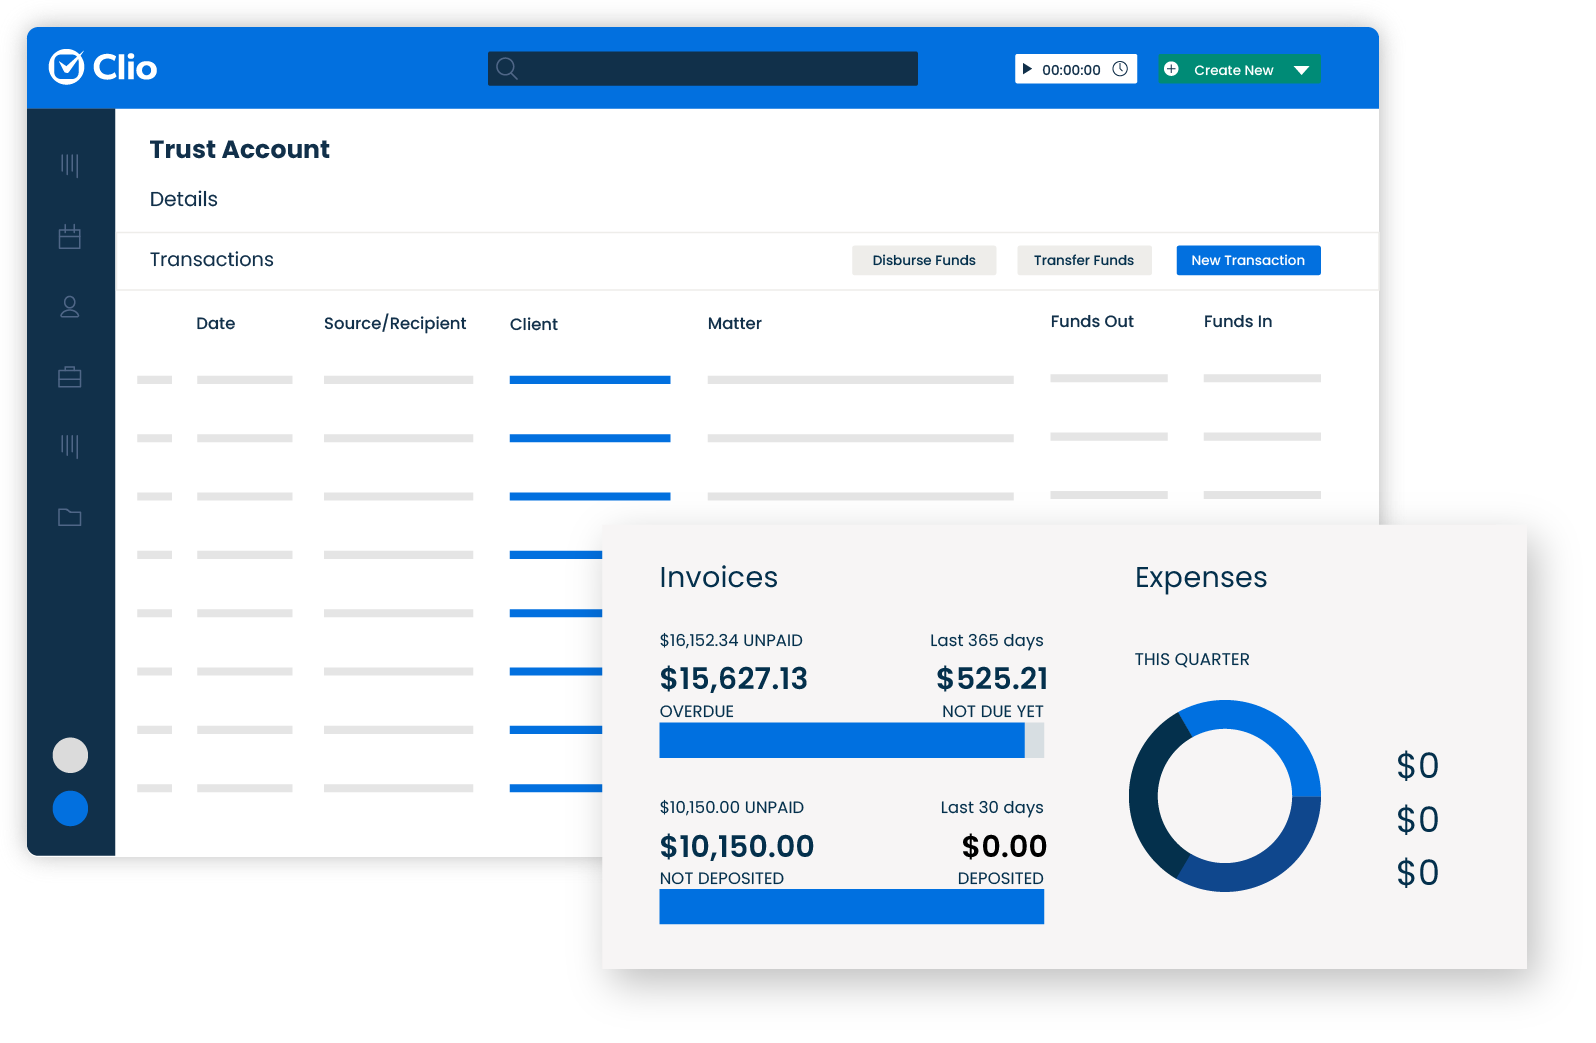 Clio Software - Manage client funds in trust accounts with our legal accounting software. Keep detailed records that separate client funds from your firm's operating funds.